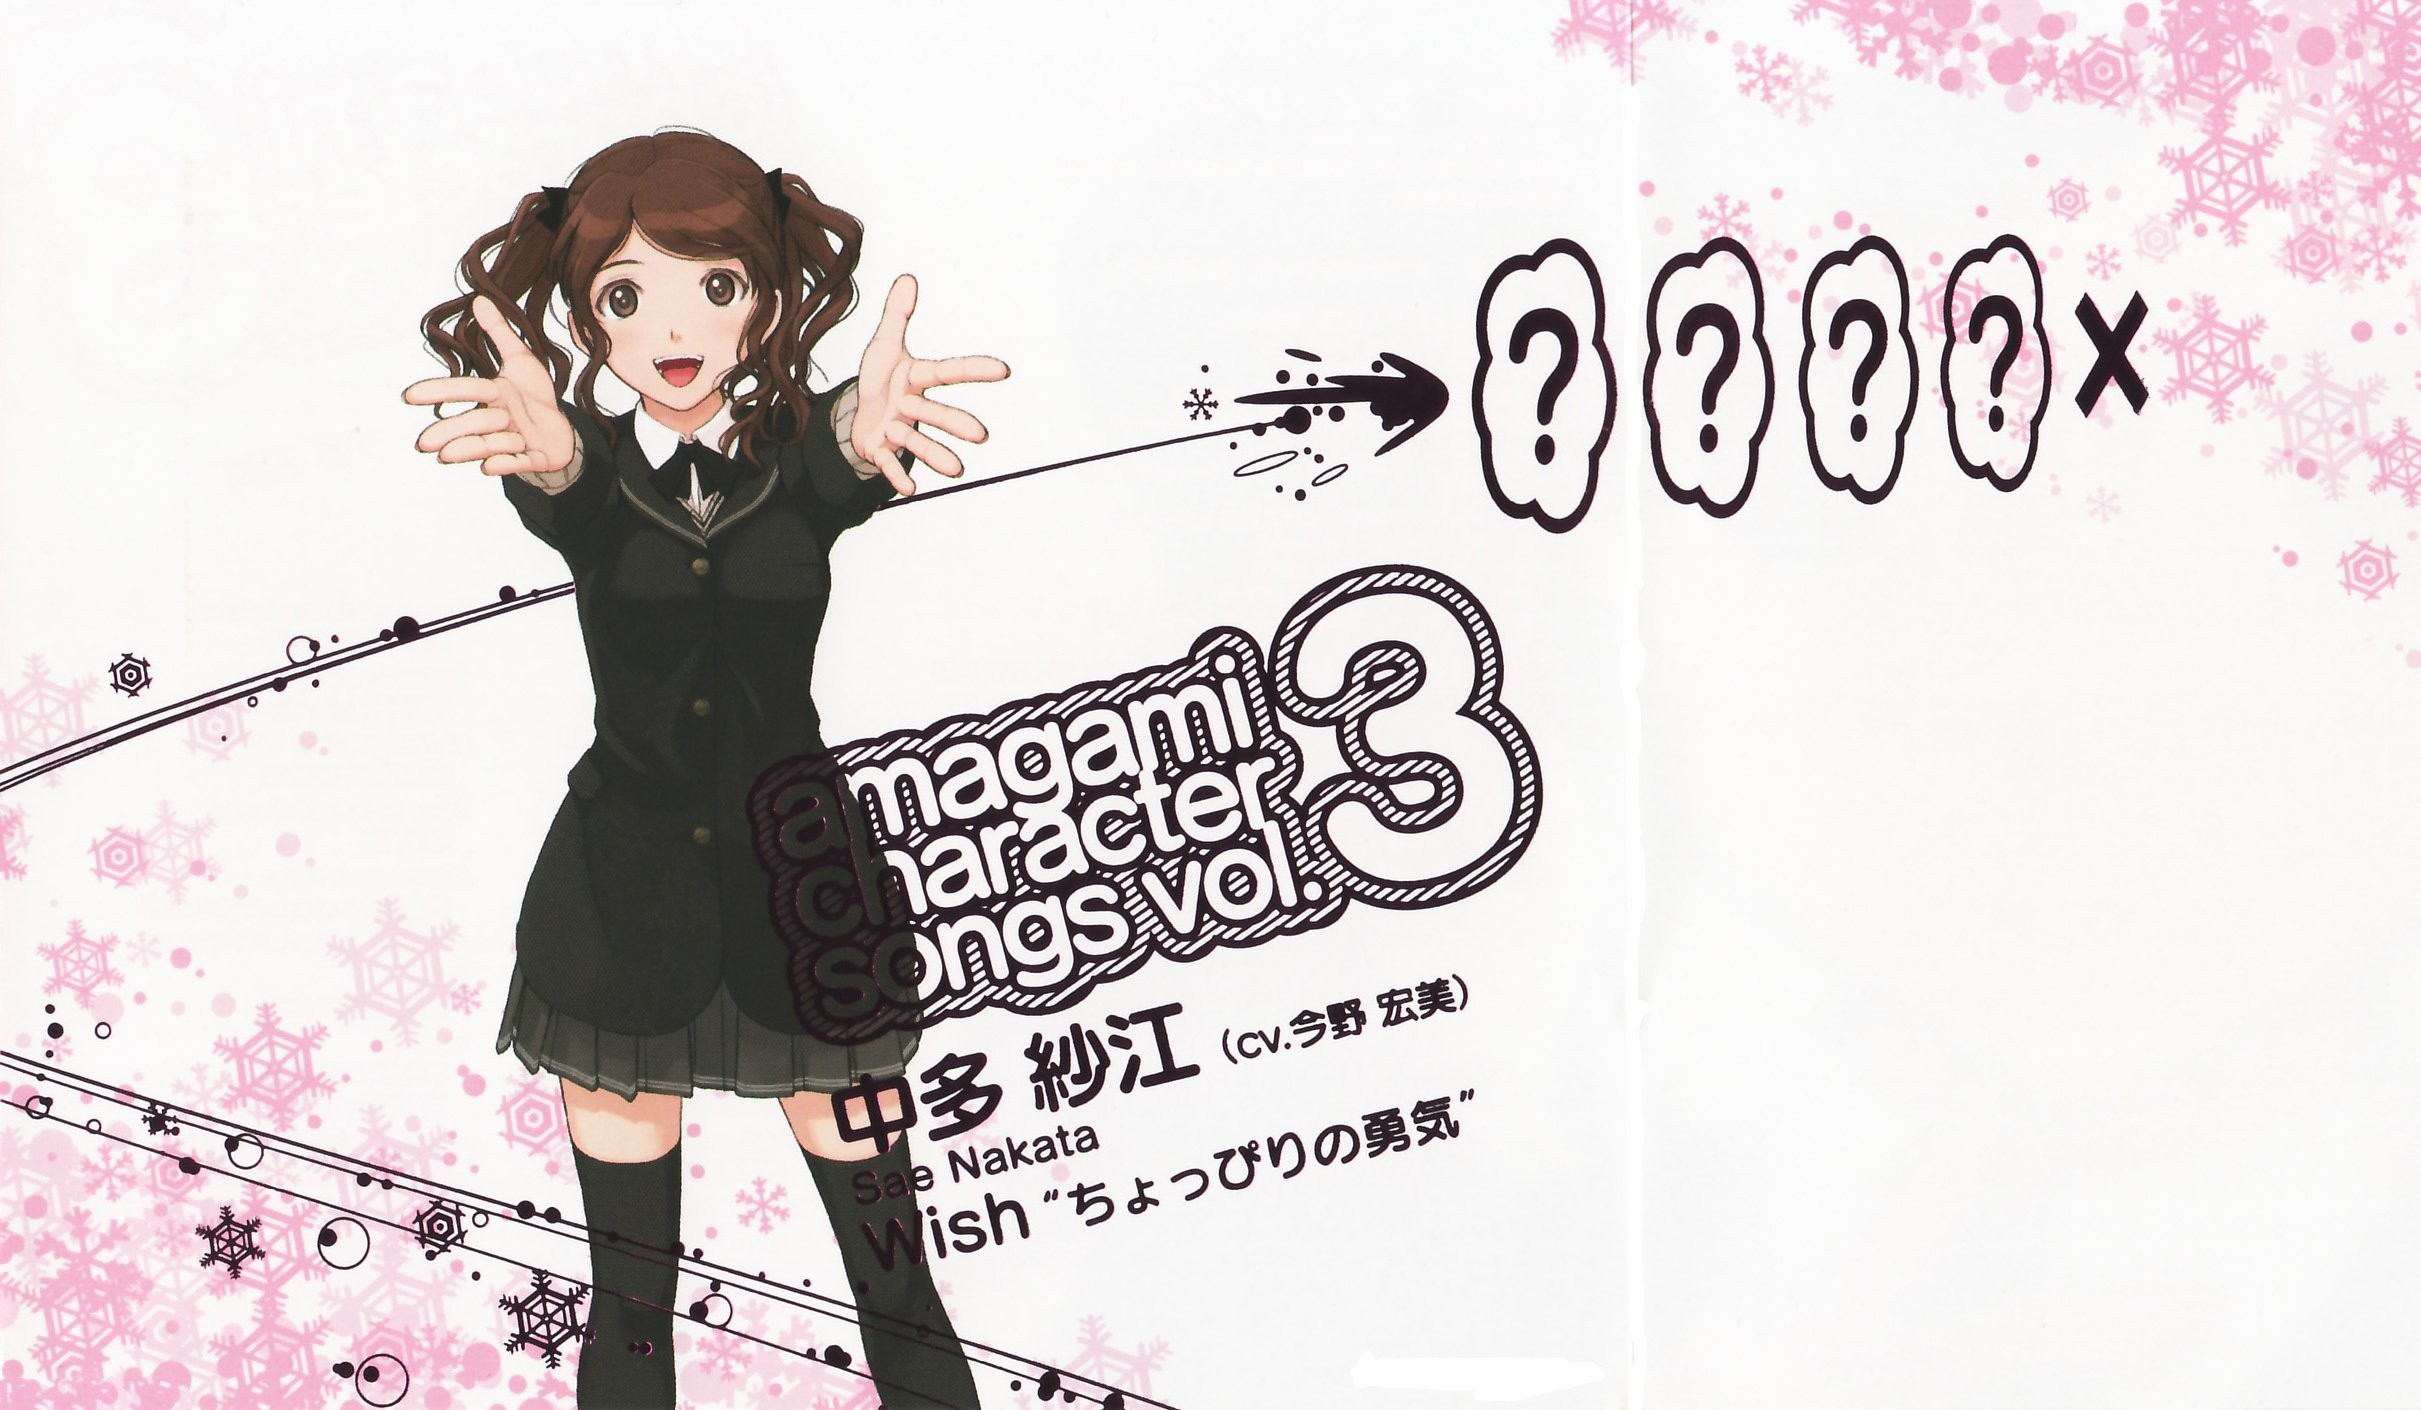 school uniforms Amagami SS HD Wallpaper